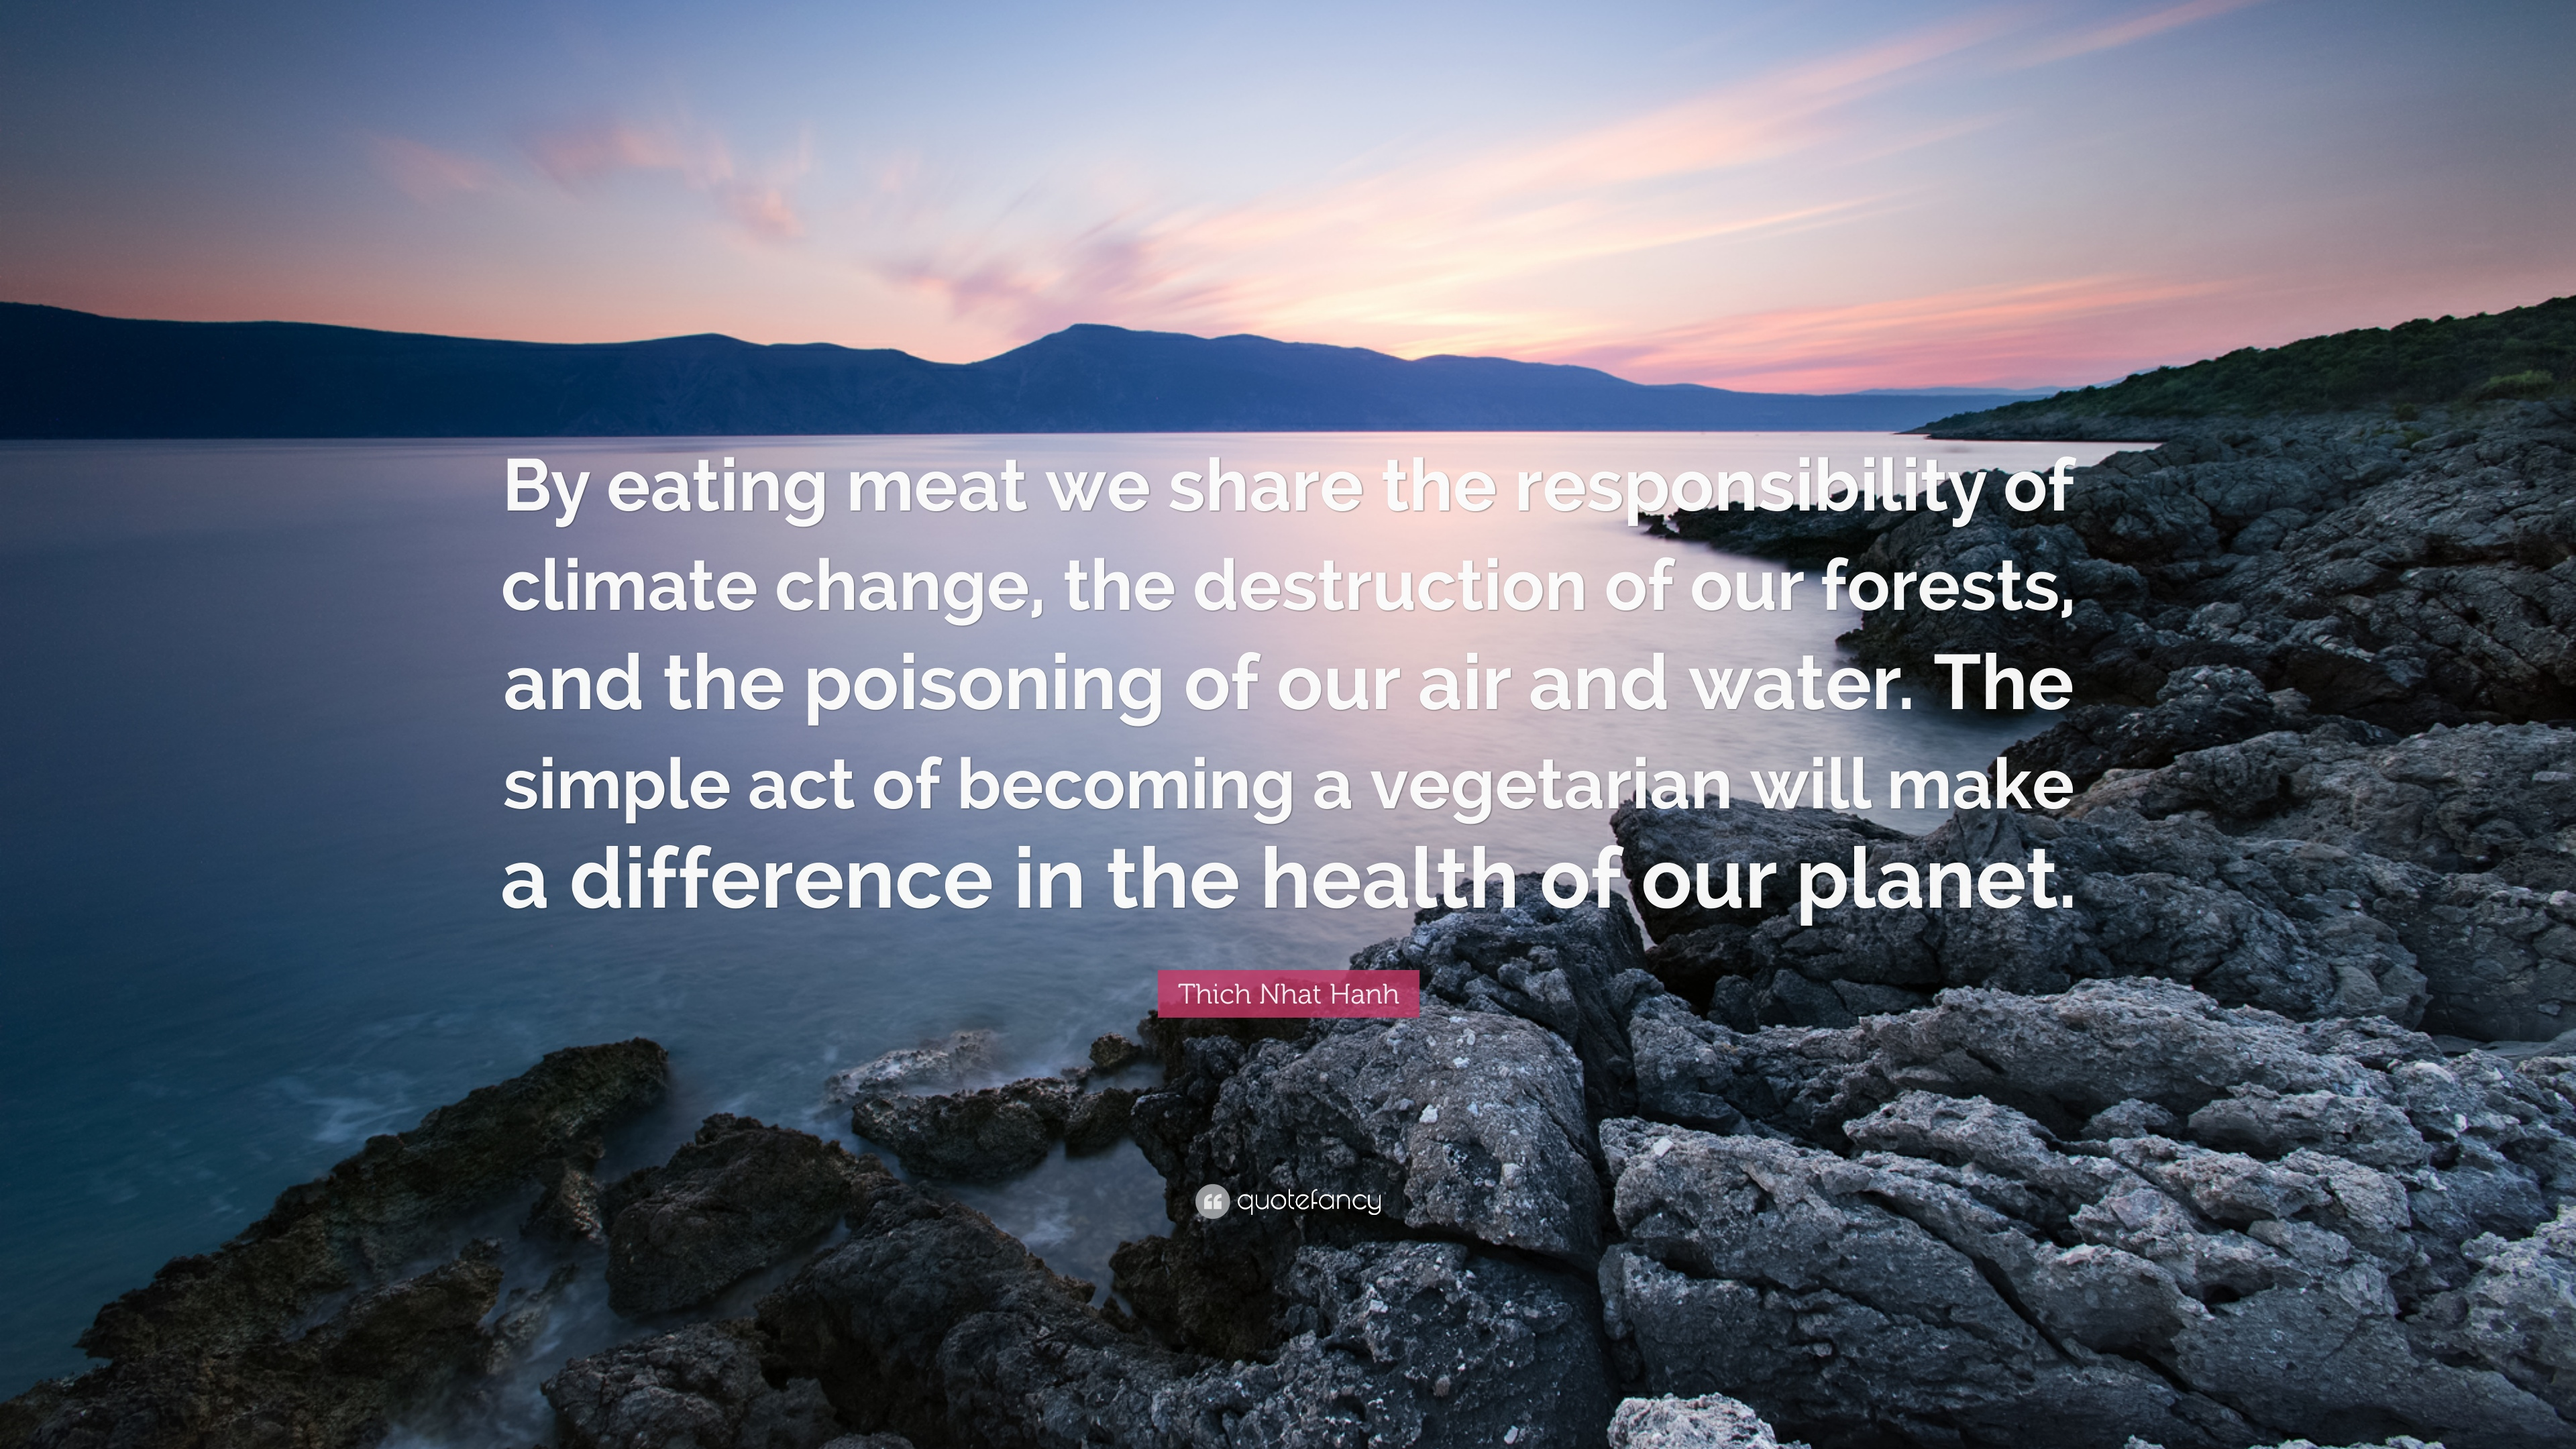 Thich Nhat Hanh Quote By Eating Meat We Share The Responsibility